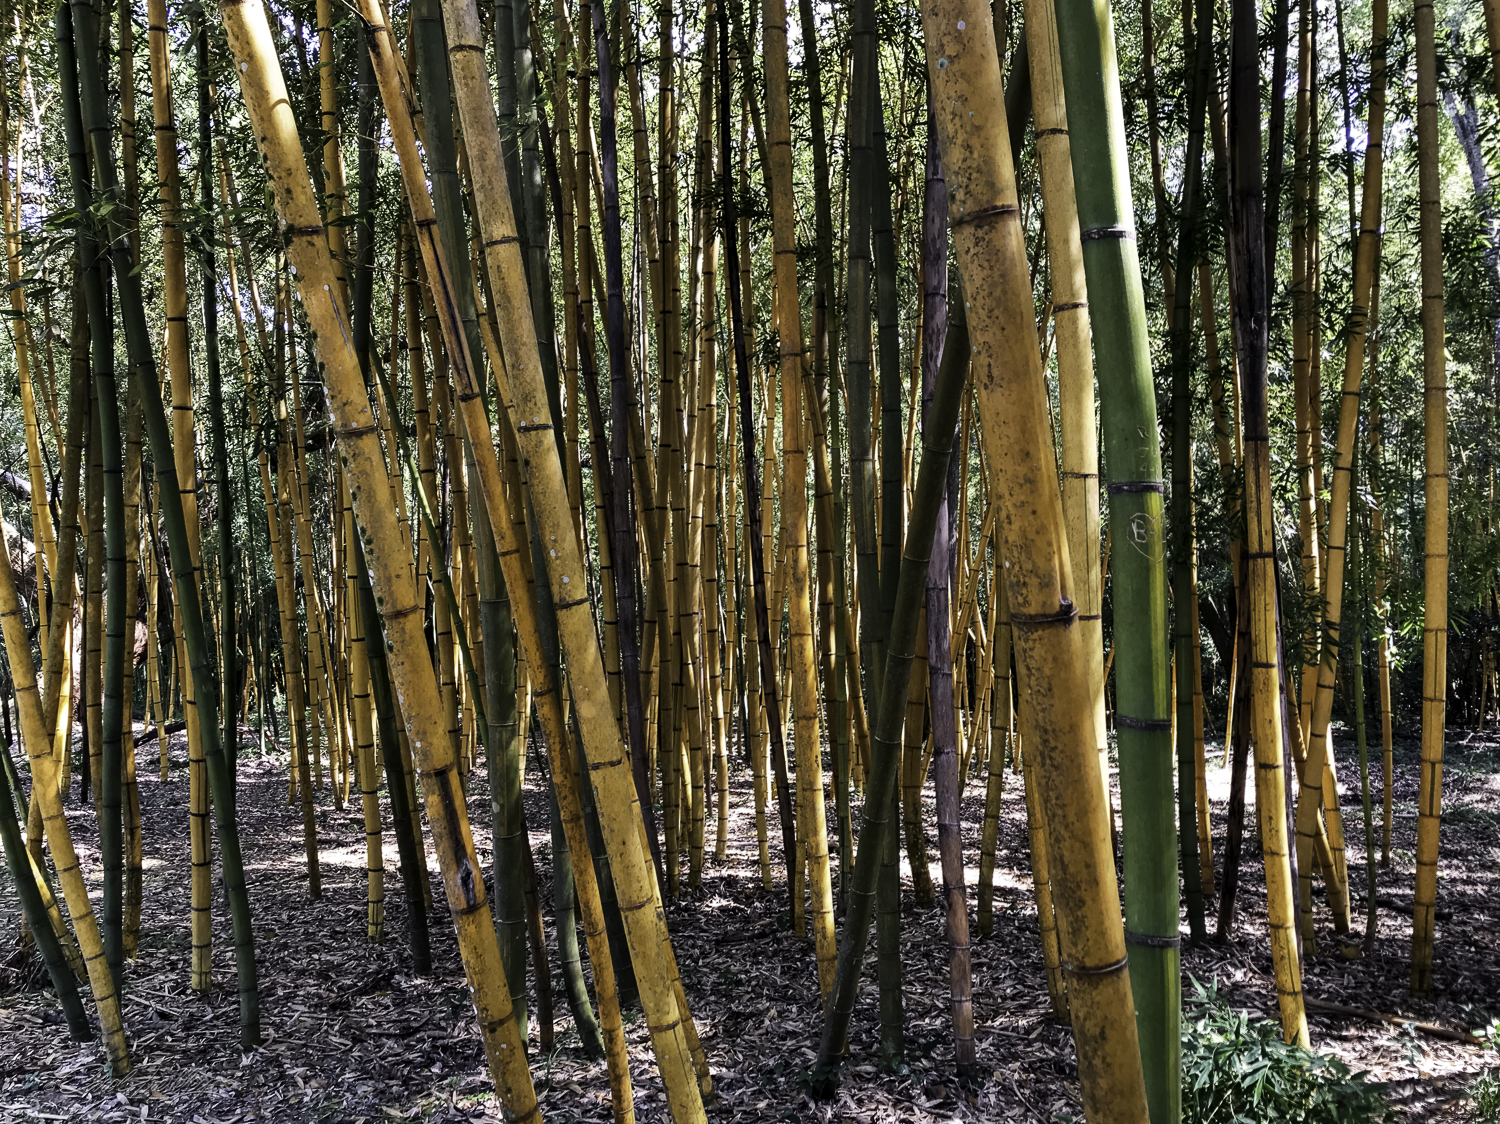 Bamboo is quick growing and can reach mature size in one year. It is a commercial plant that grows well on the island.